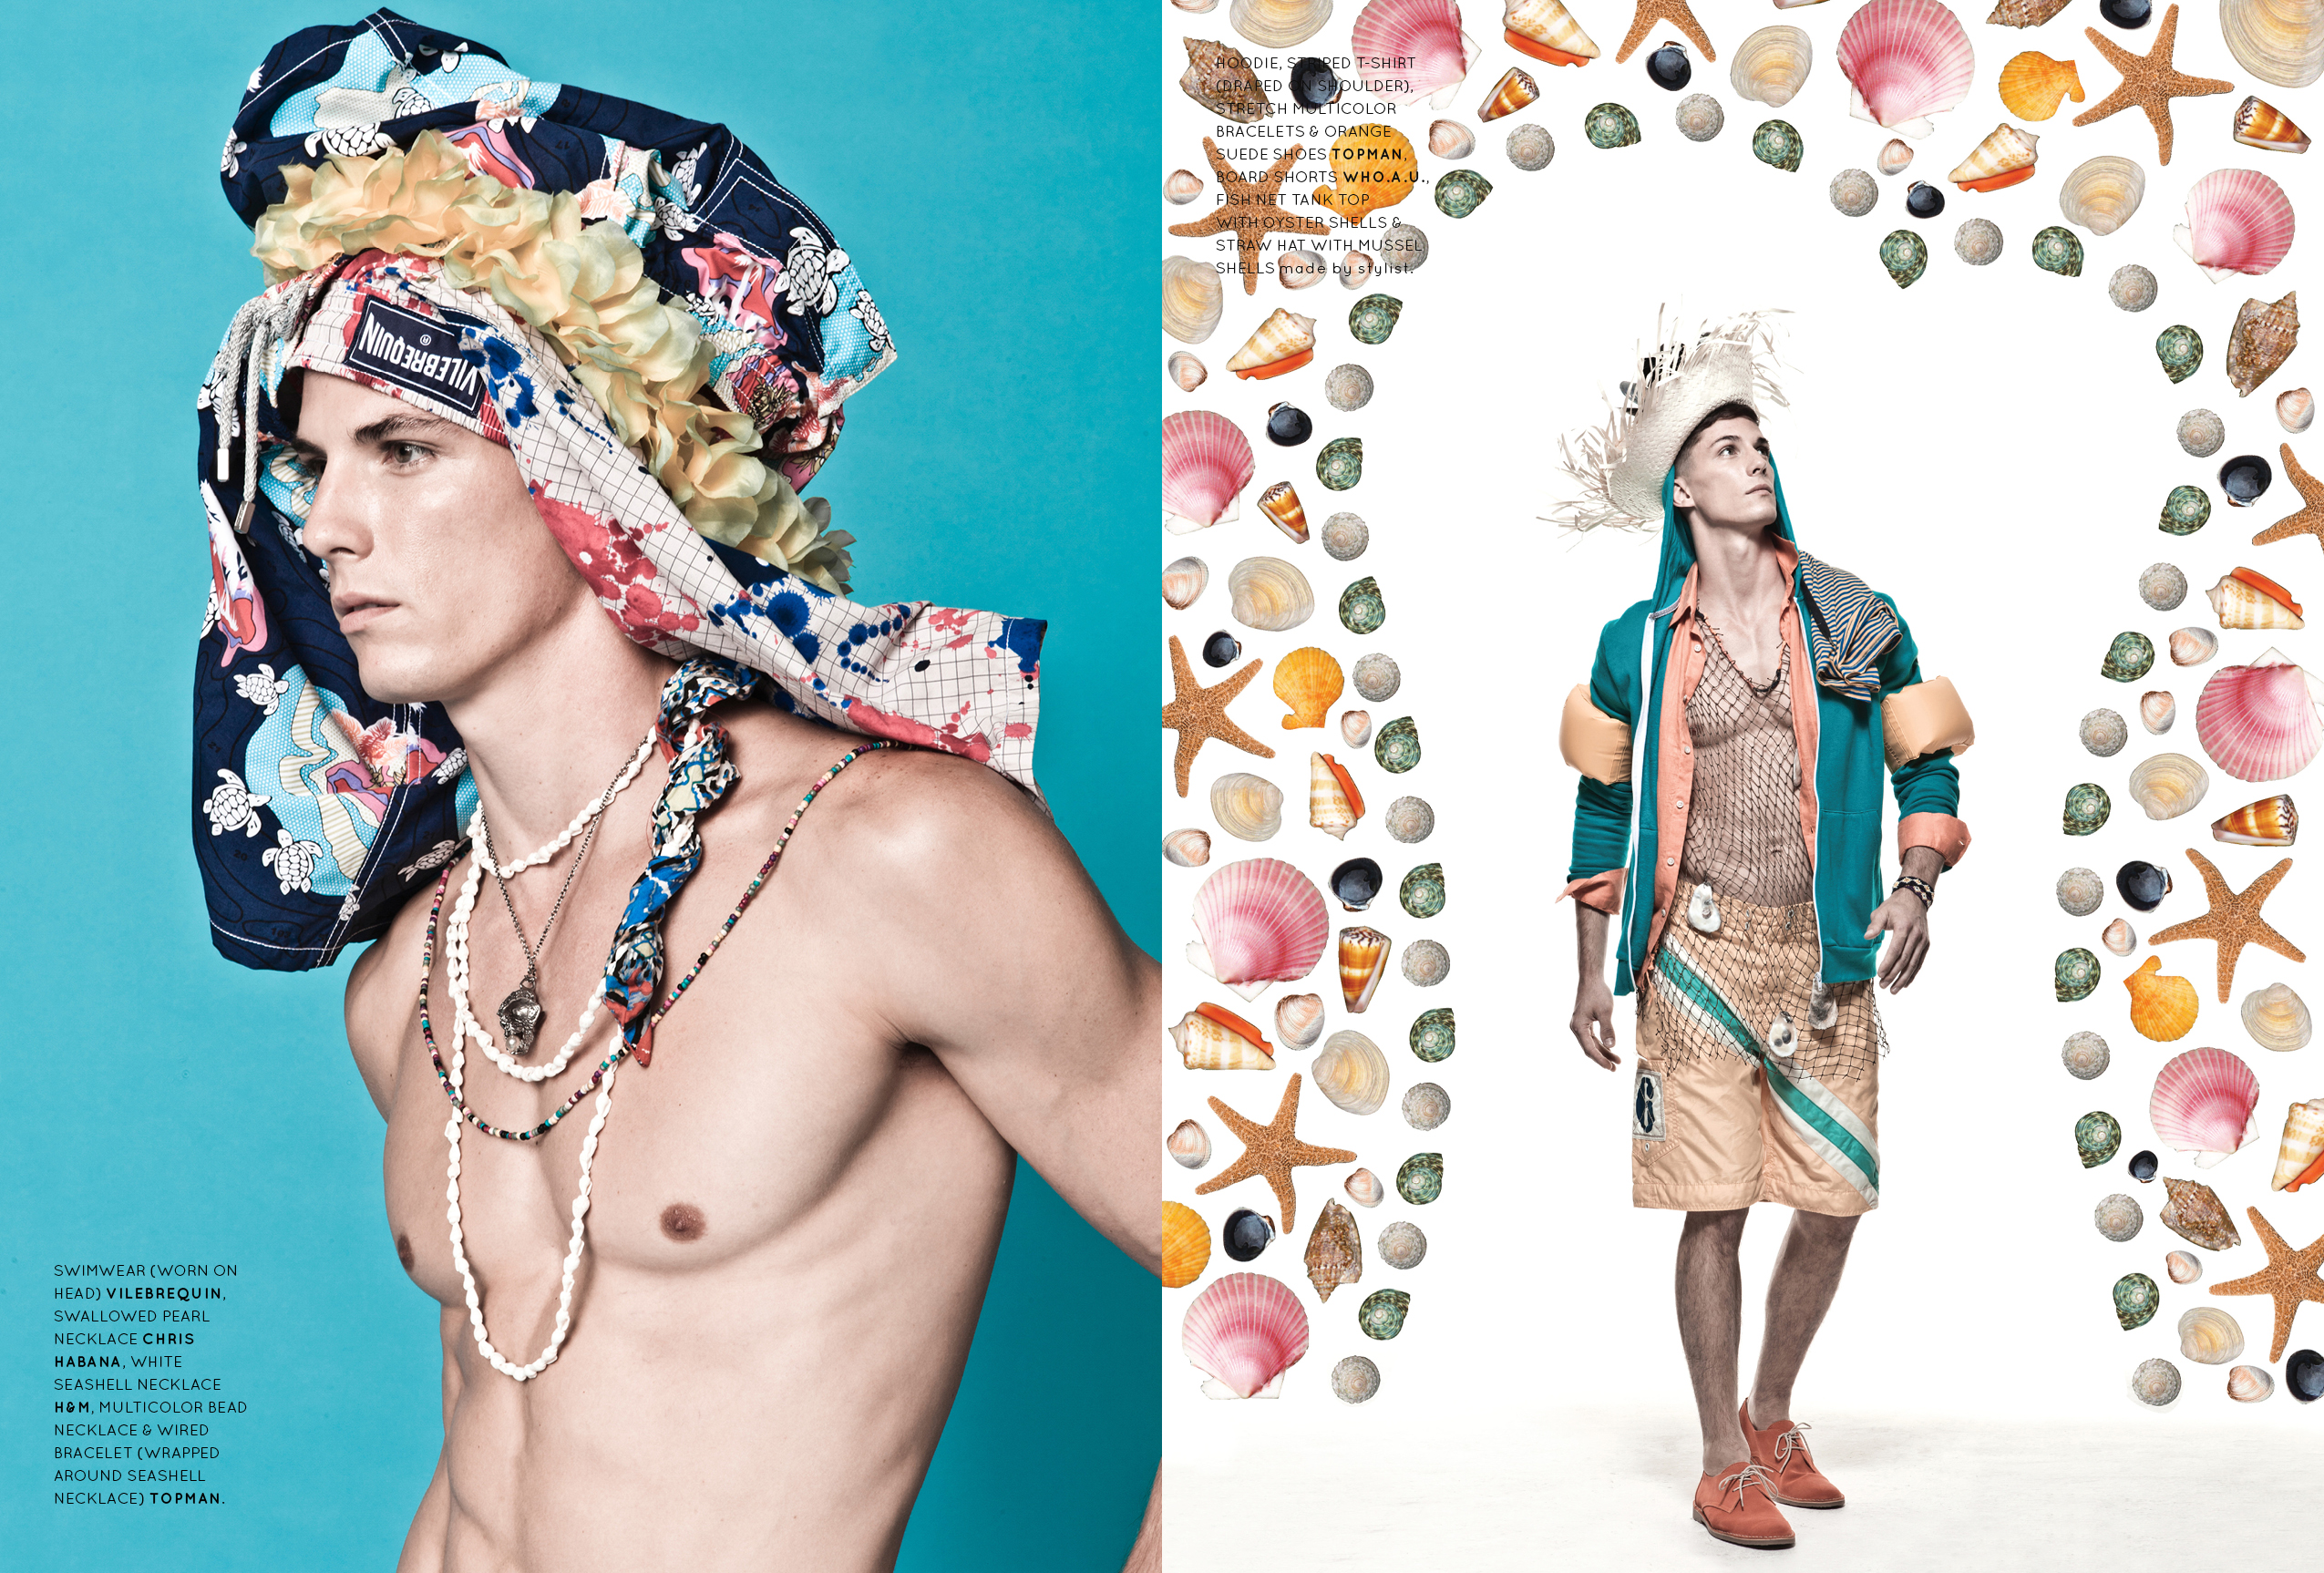 Left: swimwear (worn on head) Vilebrequin,  swallowed pearl necklace Chris Habana, white seashell necklace H&M, multicolor bead necklace & wired bracelet (wrapped around seashell necklace) Topman. Right: hoodie, striped t-shirt (draped on shoulder), stretch multicolor bracelets & orange suede shoes Topman, board shorts Who.A.U., fish net tank top with oyster shells & straw hat with mussel shells made by stylist.